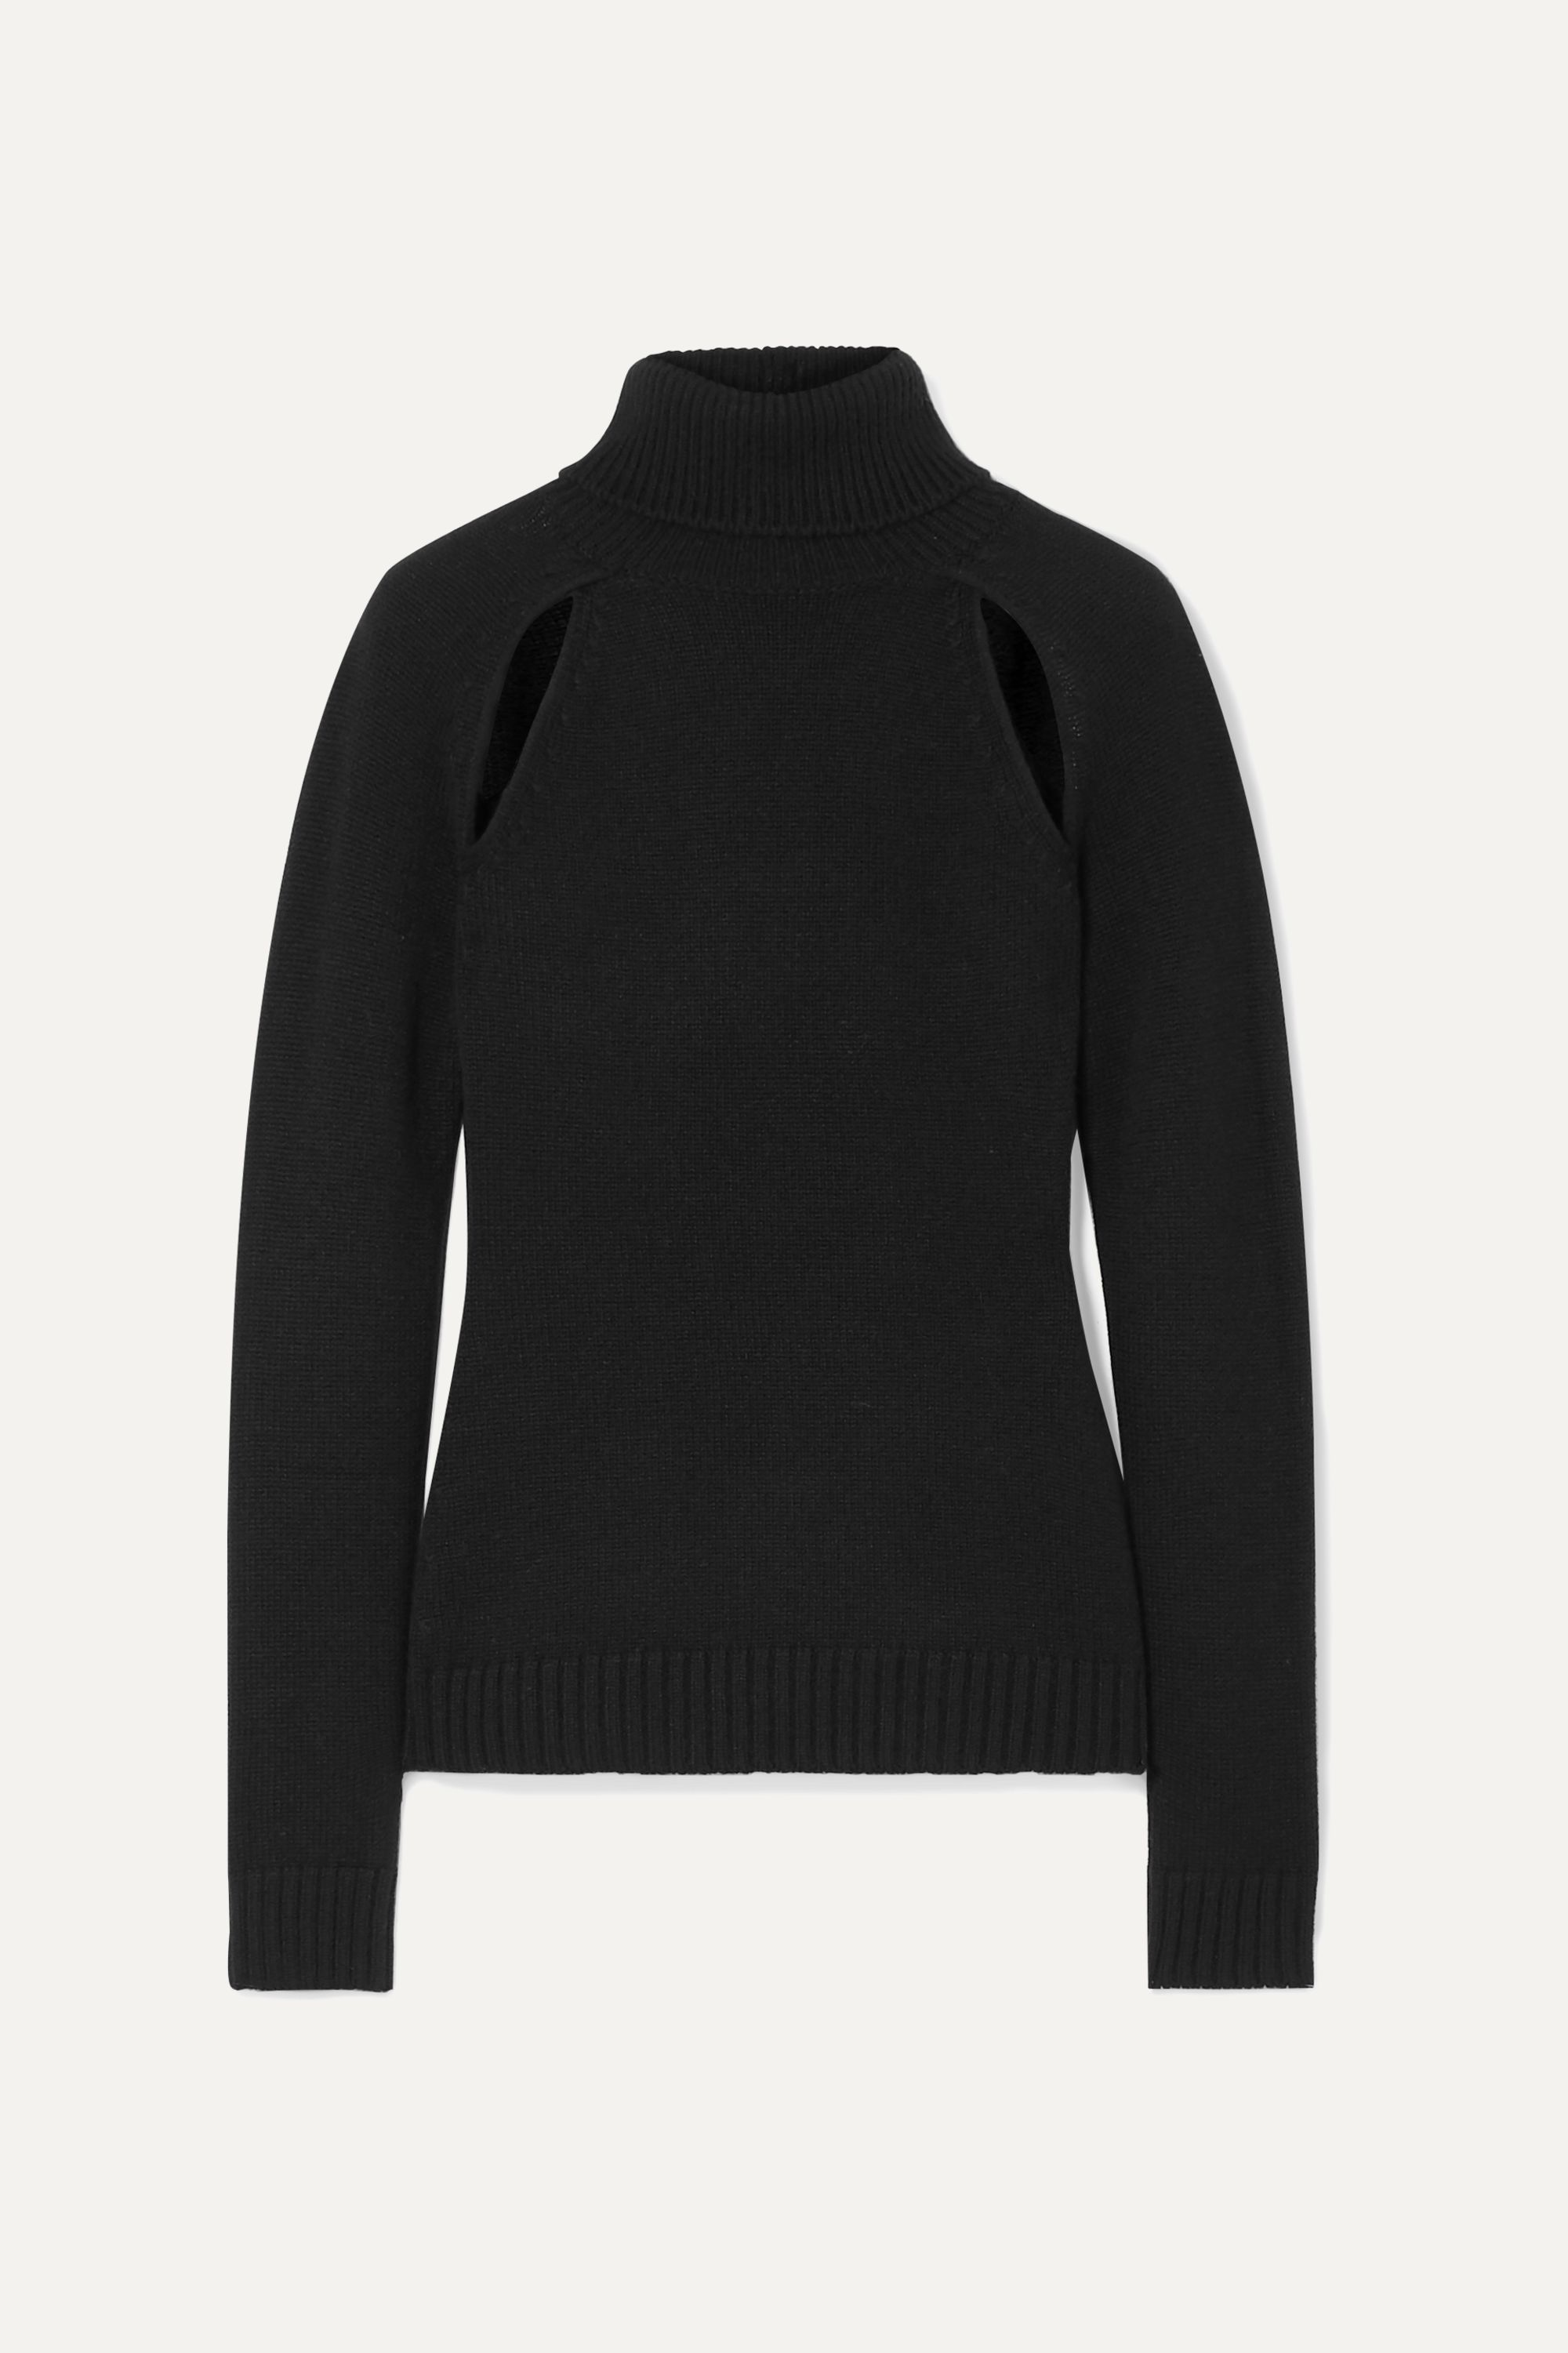 TOM FORD Cutout cashmere turtleneck sweater